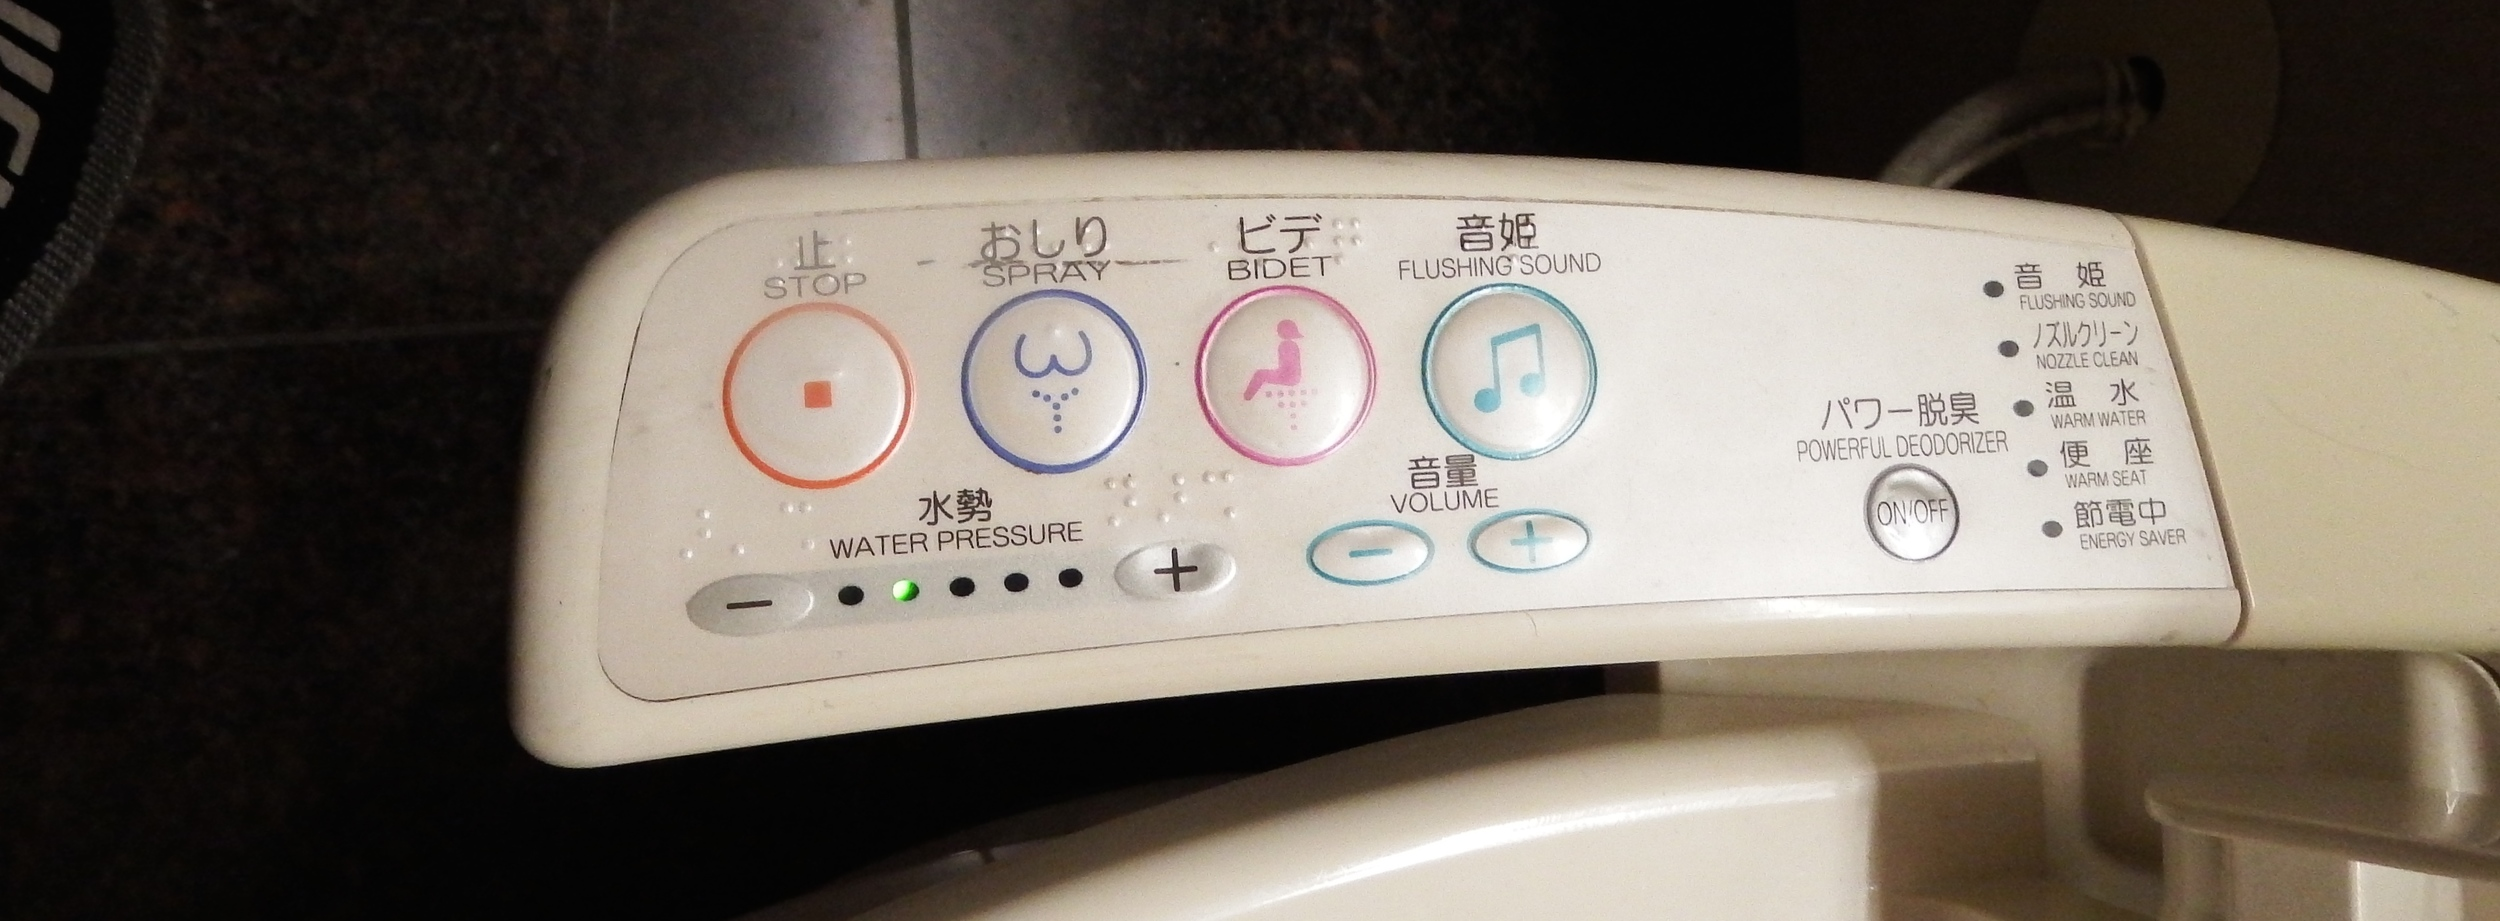 The controls on the toilet.